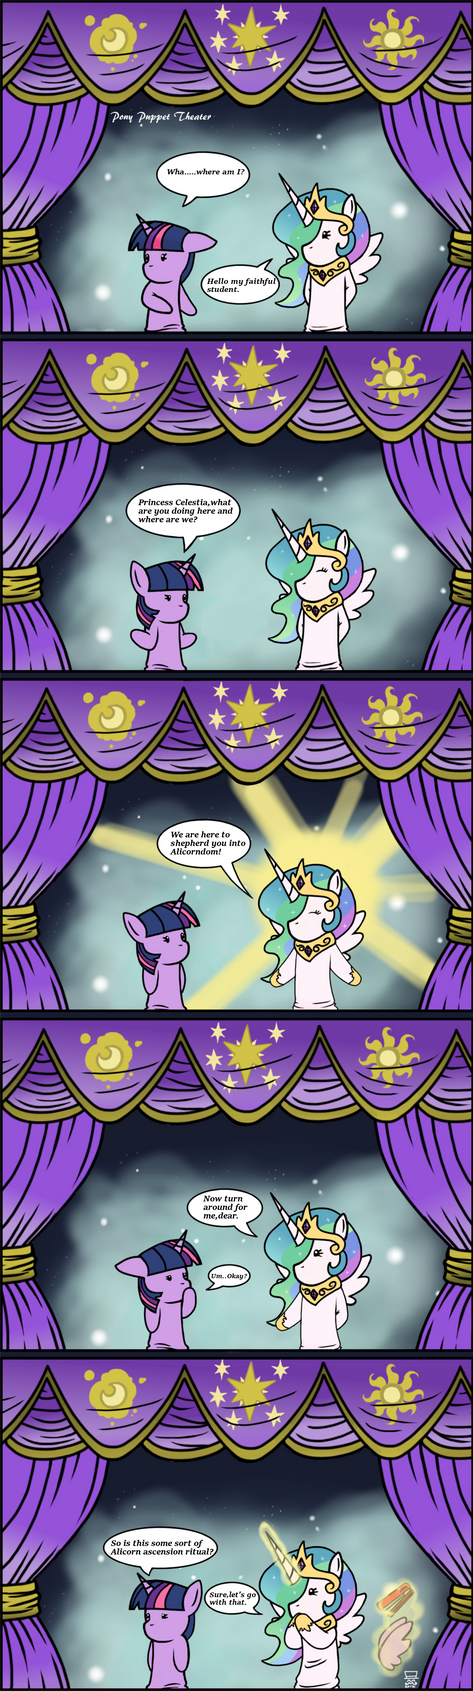 Pony Puppet Theater #7 Alicorn Ascension by MangaMeister